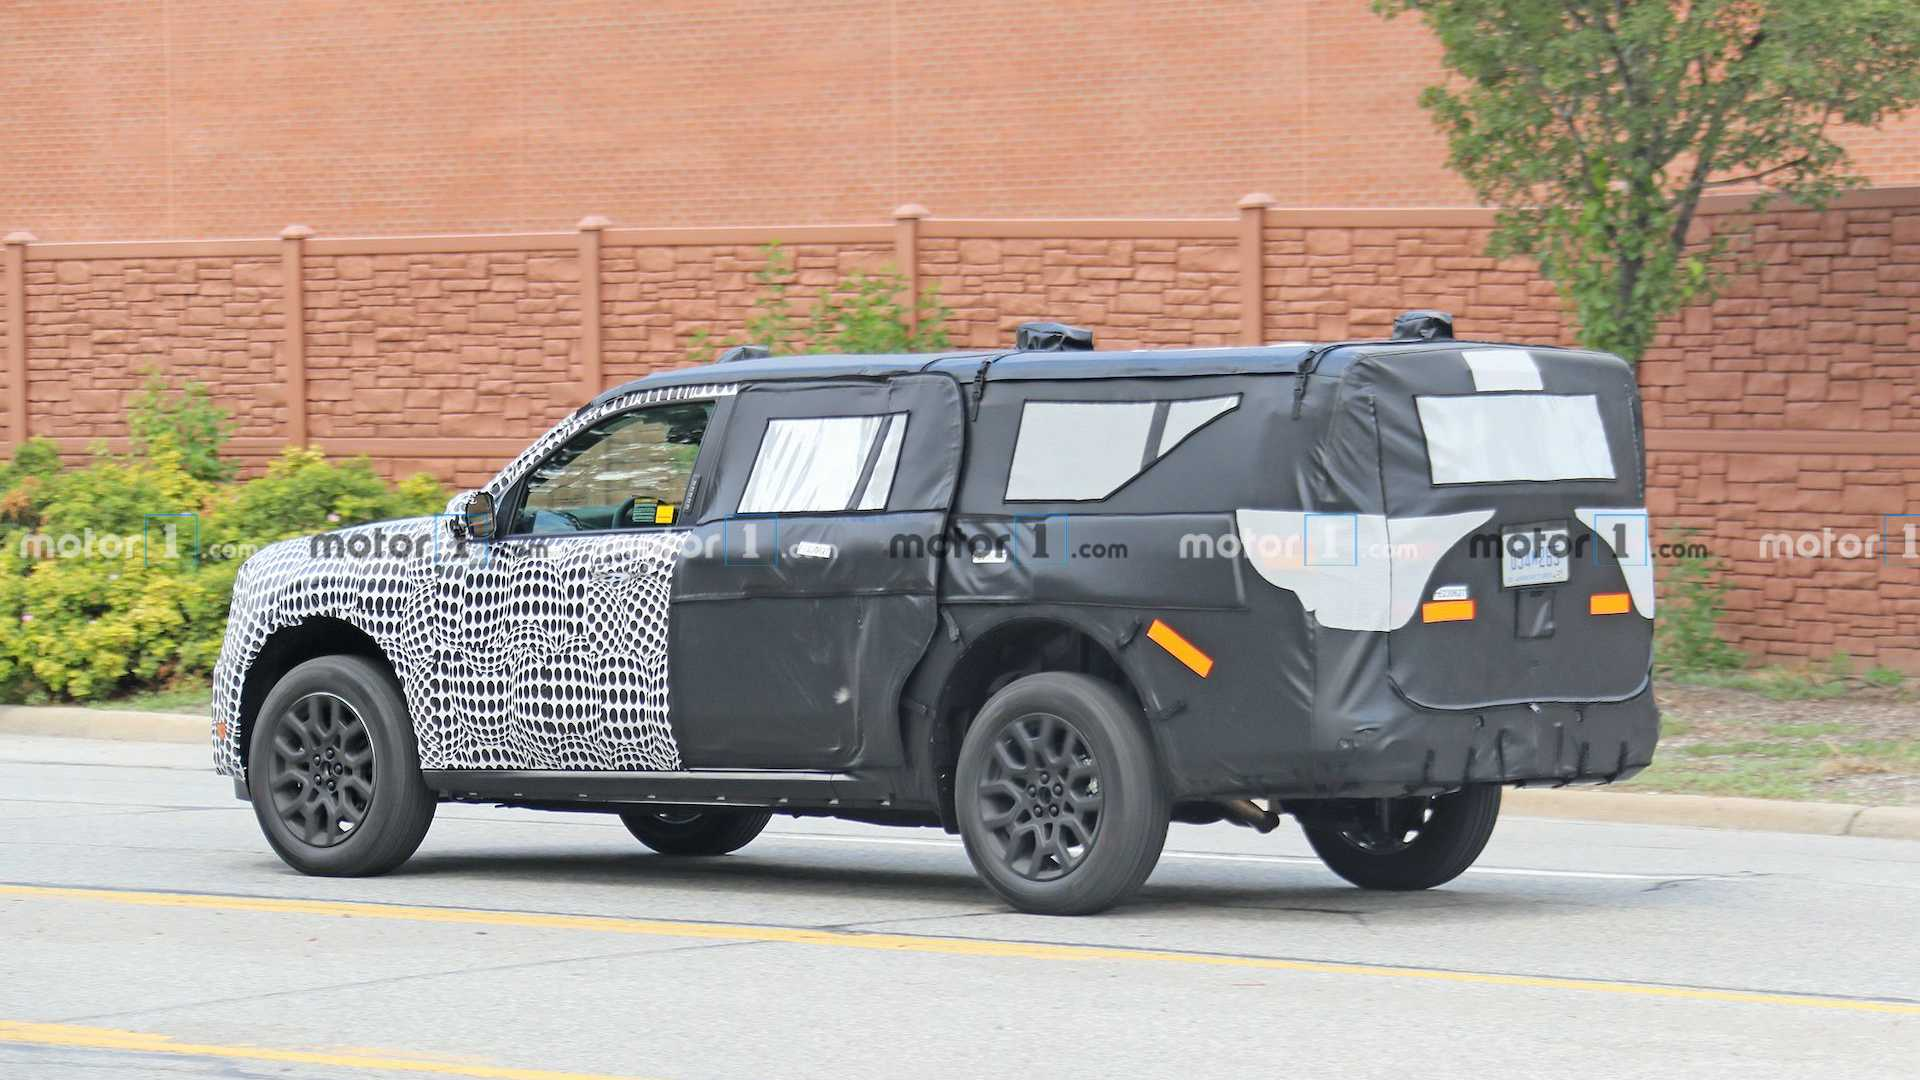 2020 - [Ford] Pickup  Ford-mystery-suv-caught-testing-in-michigan